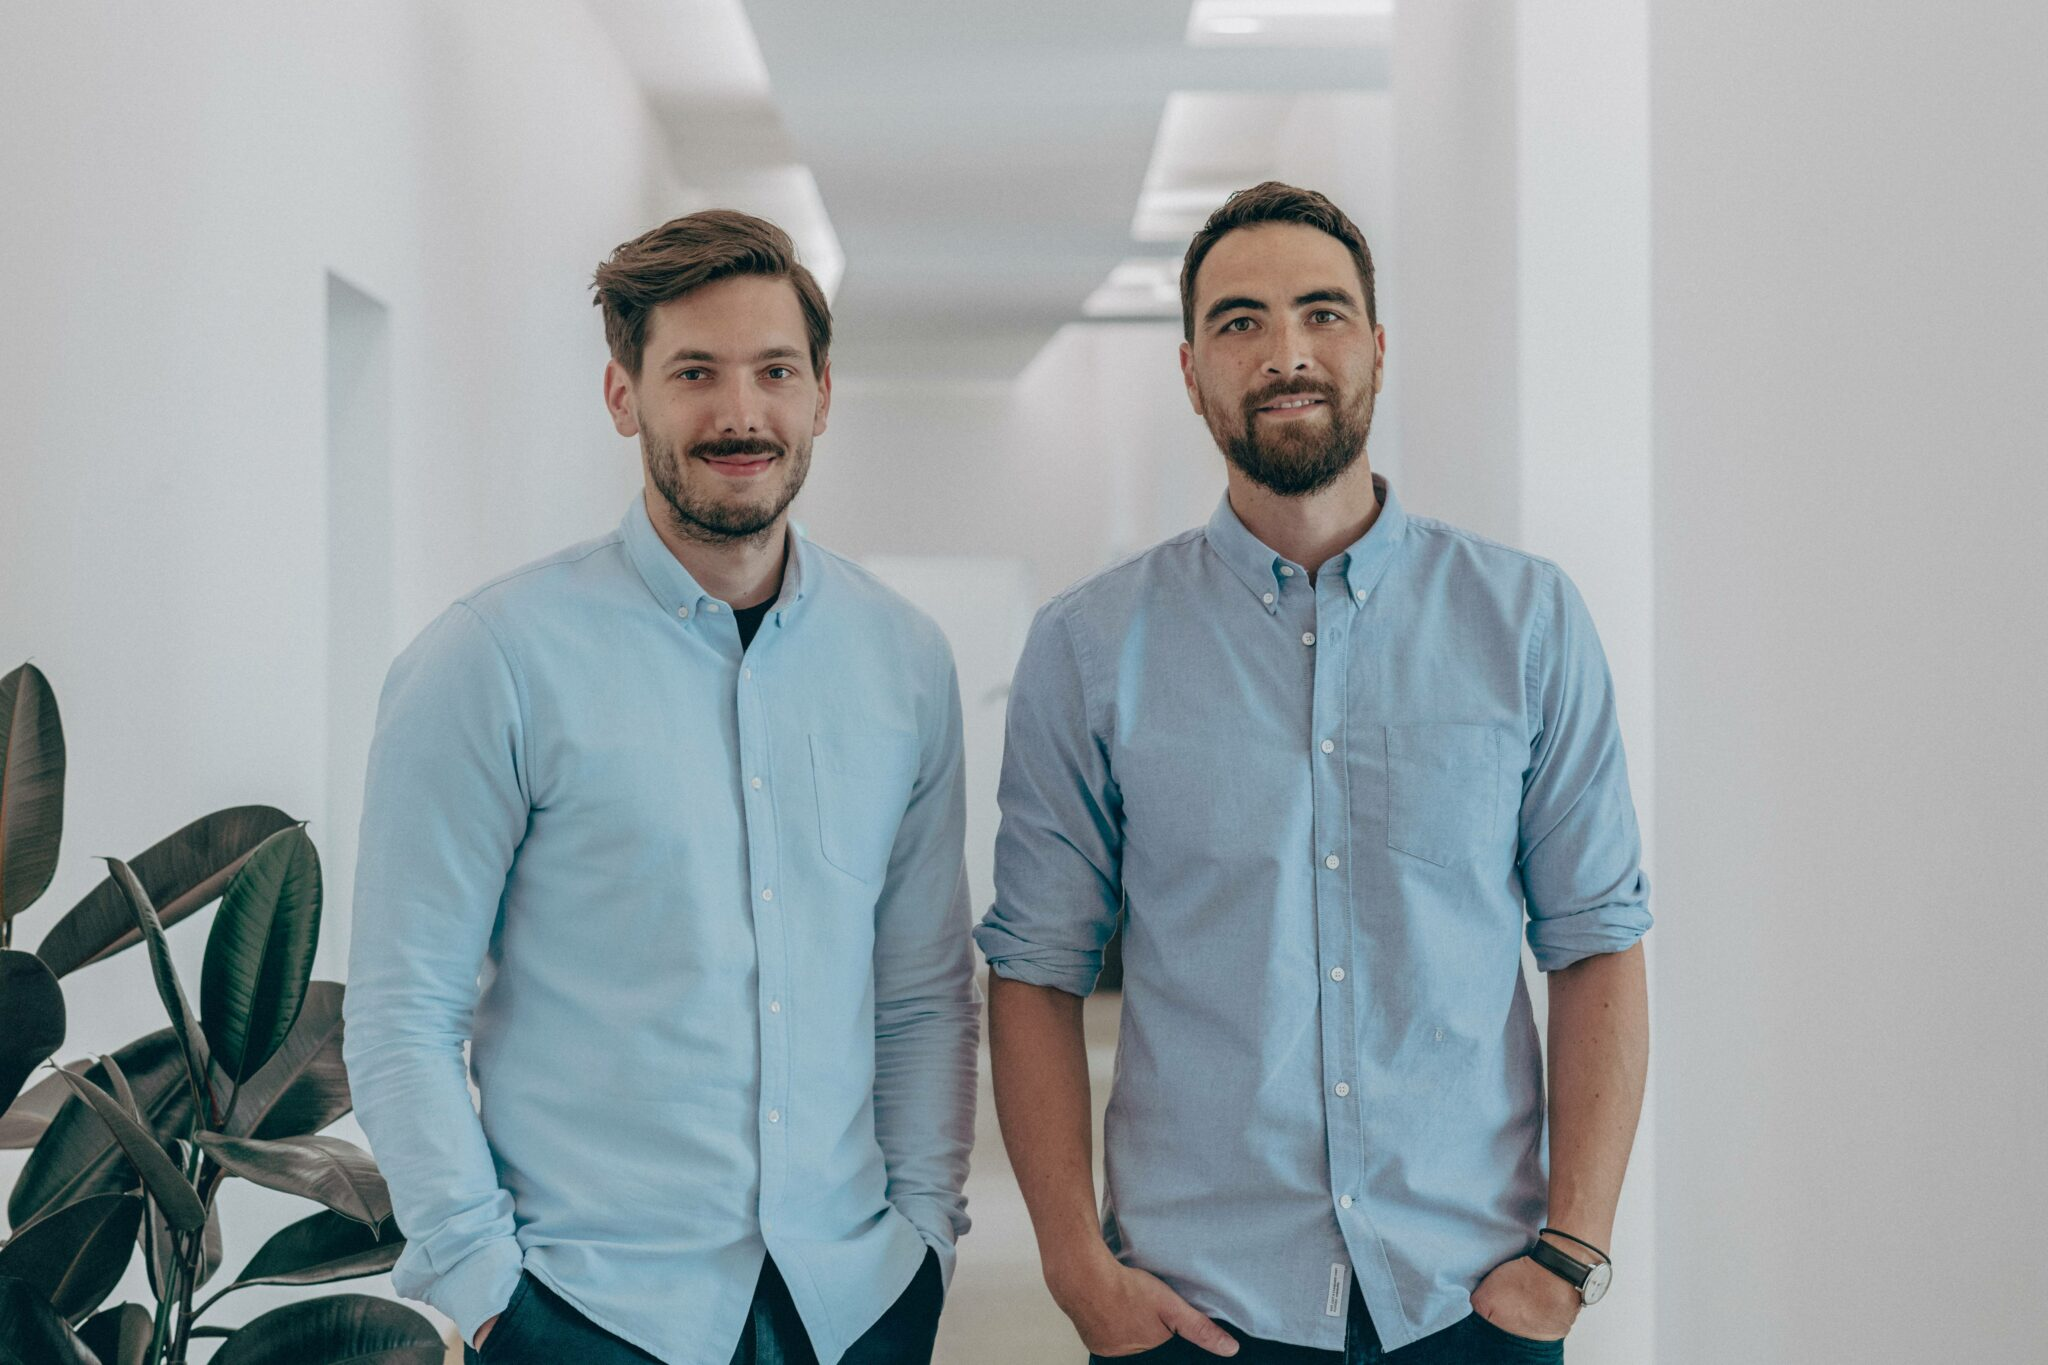 Berlin-based expertlead raises €9.5 million to connect companies worldwide with the best IT professionals